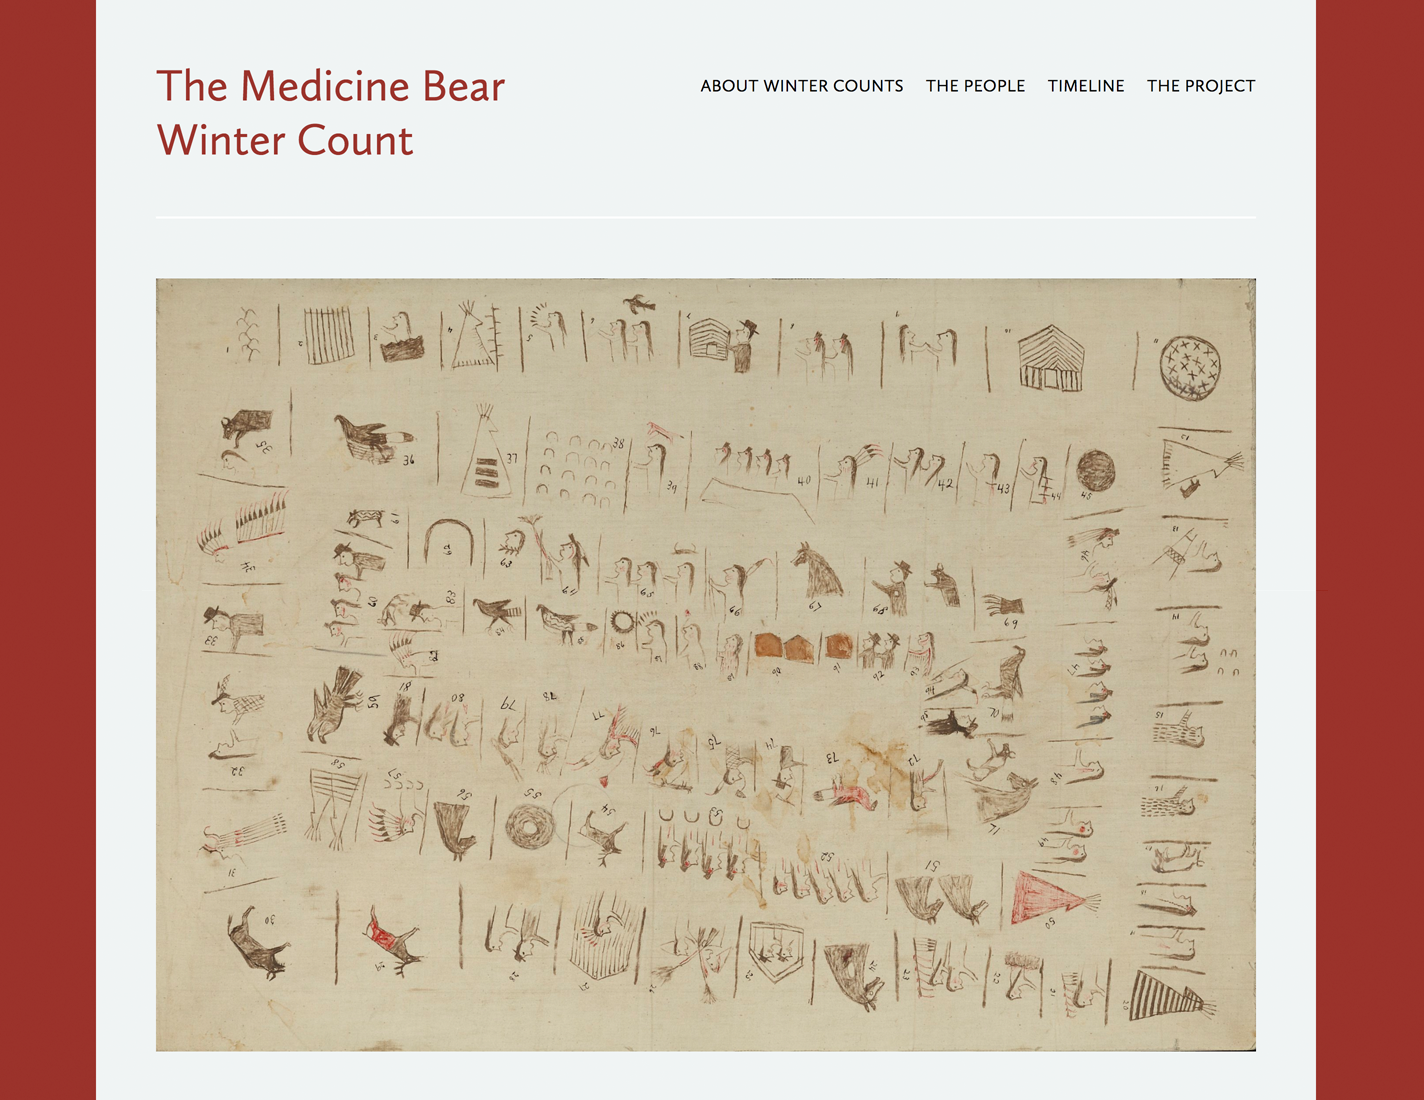 The Medicine Bear Winter Count